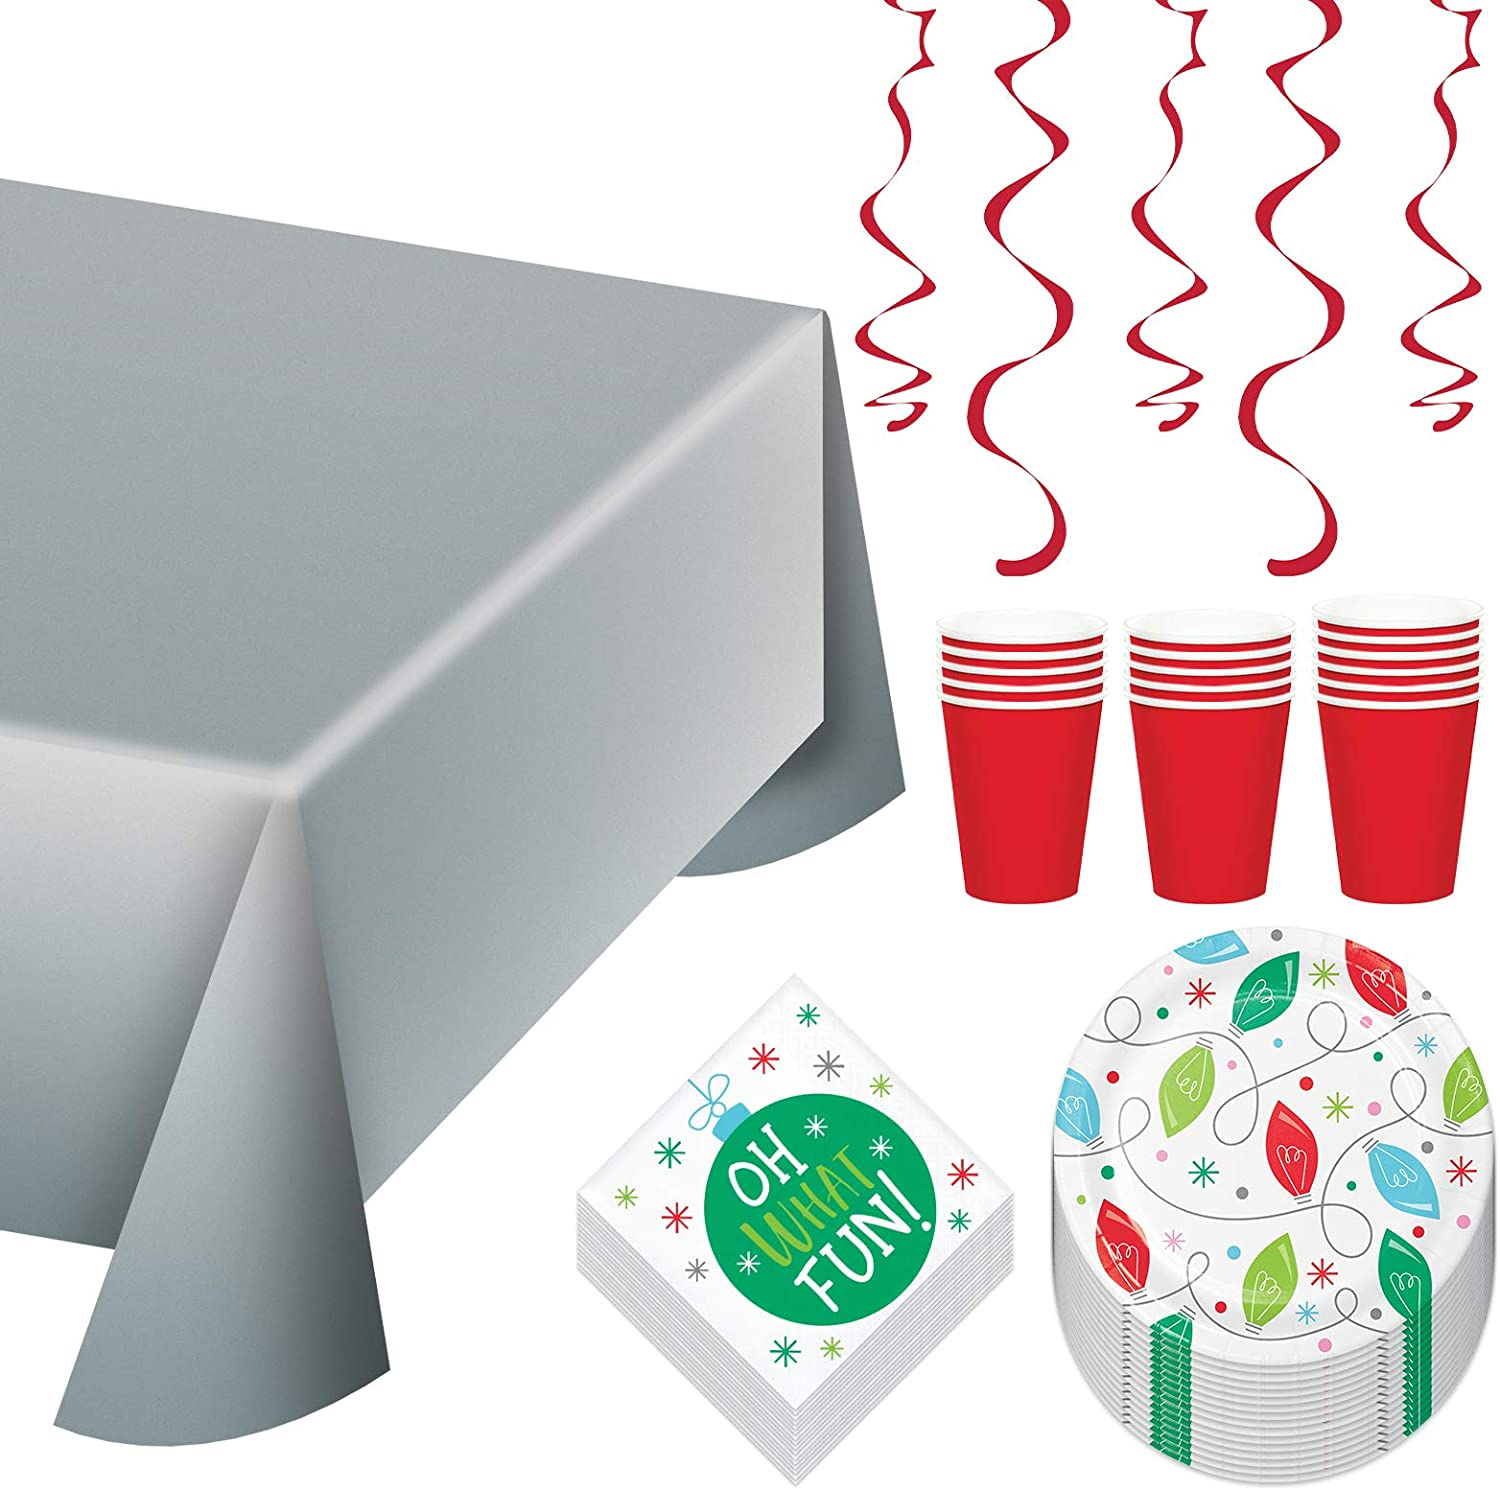 Holiday Whimsy Dessert Party Pack - Christmas Lights Paper Dessert Plates, Beverage Napkins, Red Paper Cups, and Silver Plastic Table Cover (Serves 16)